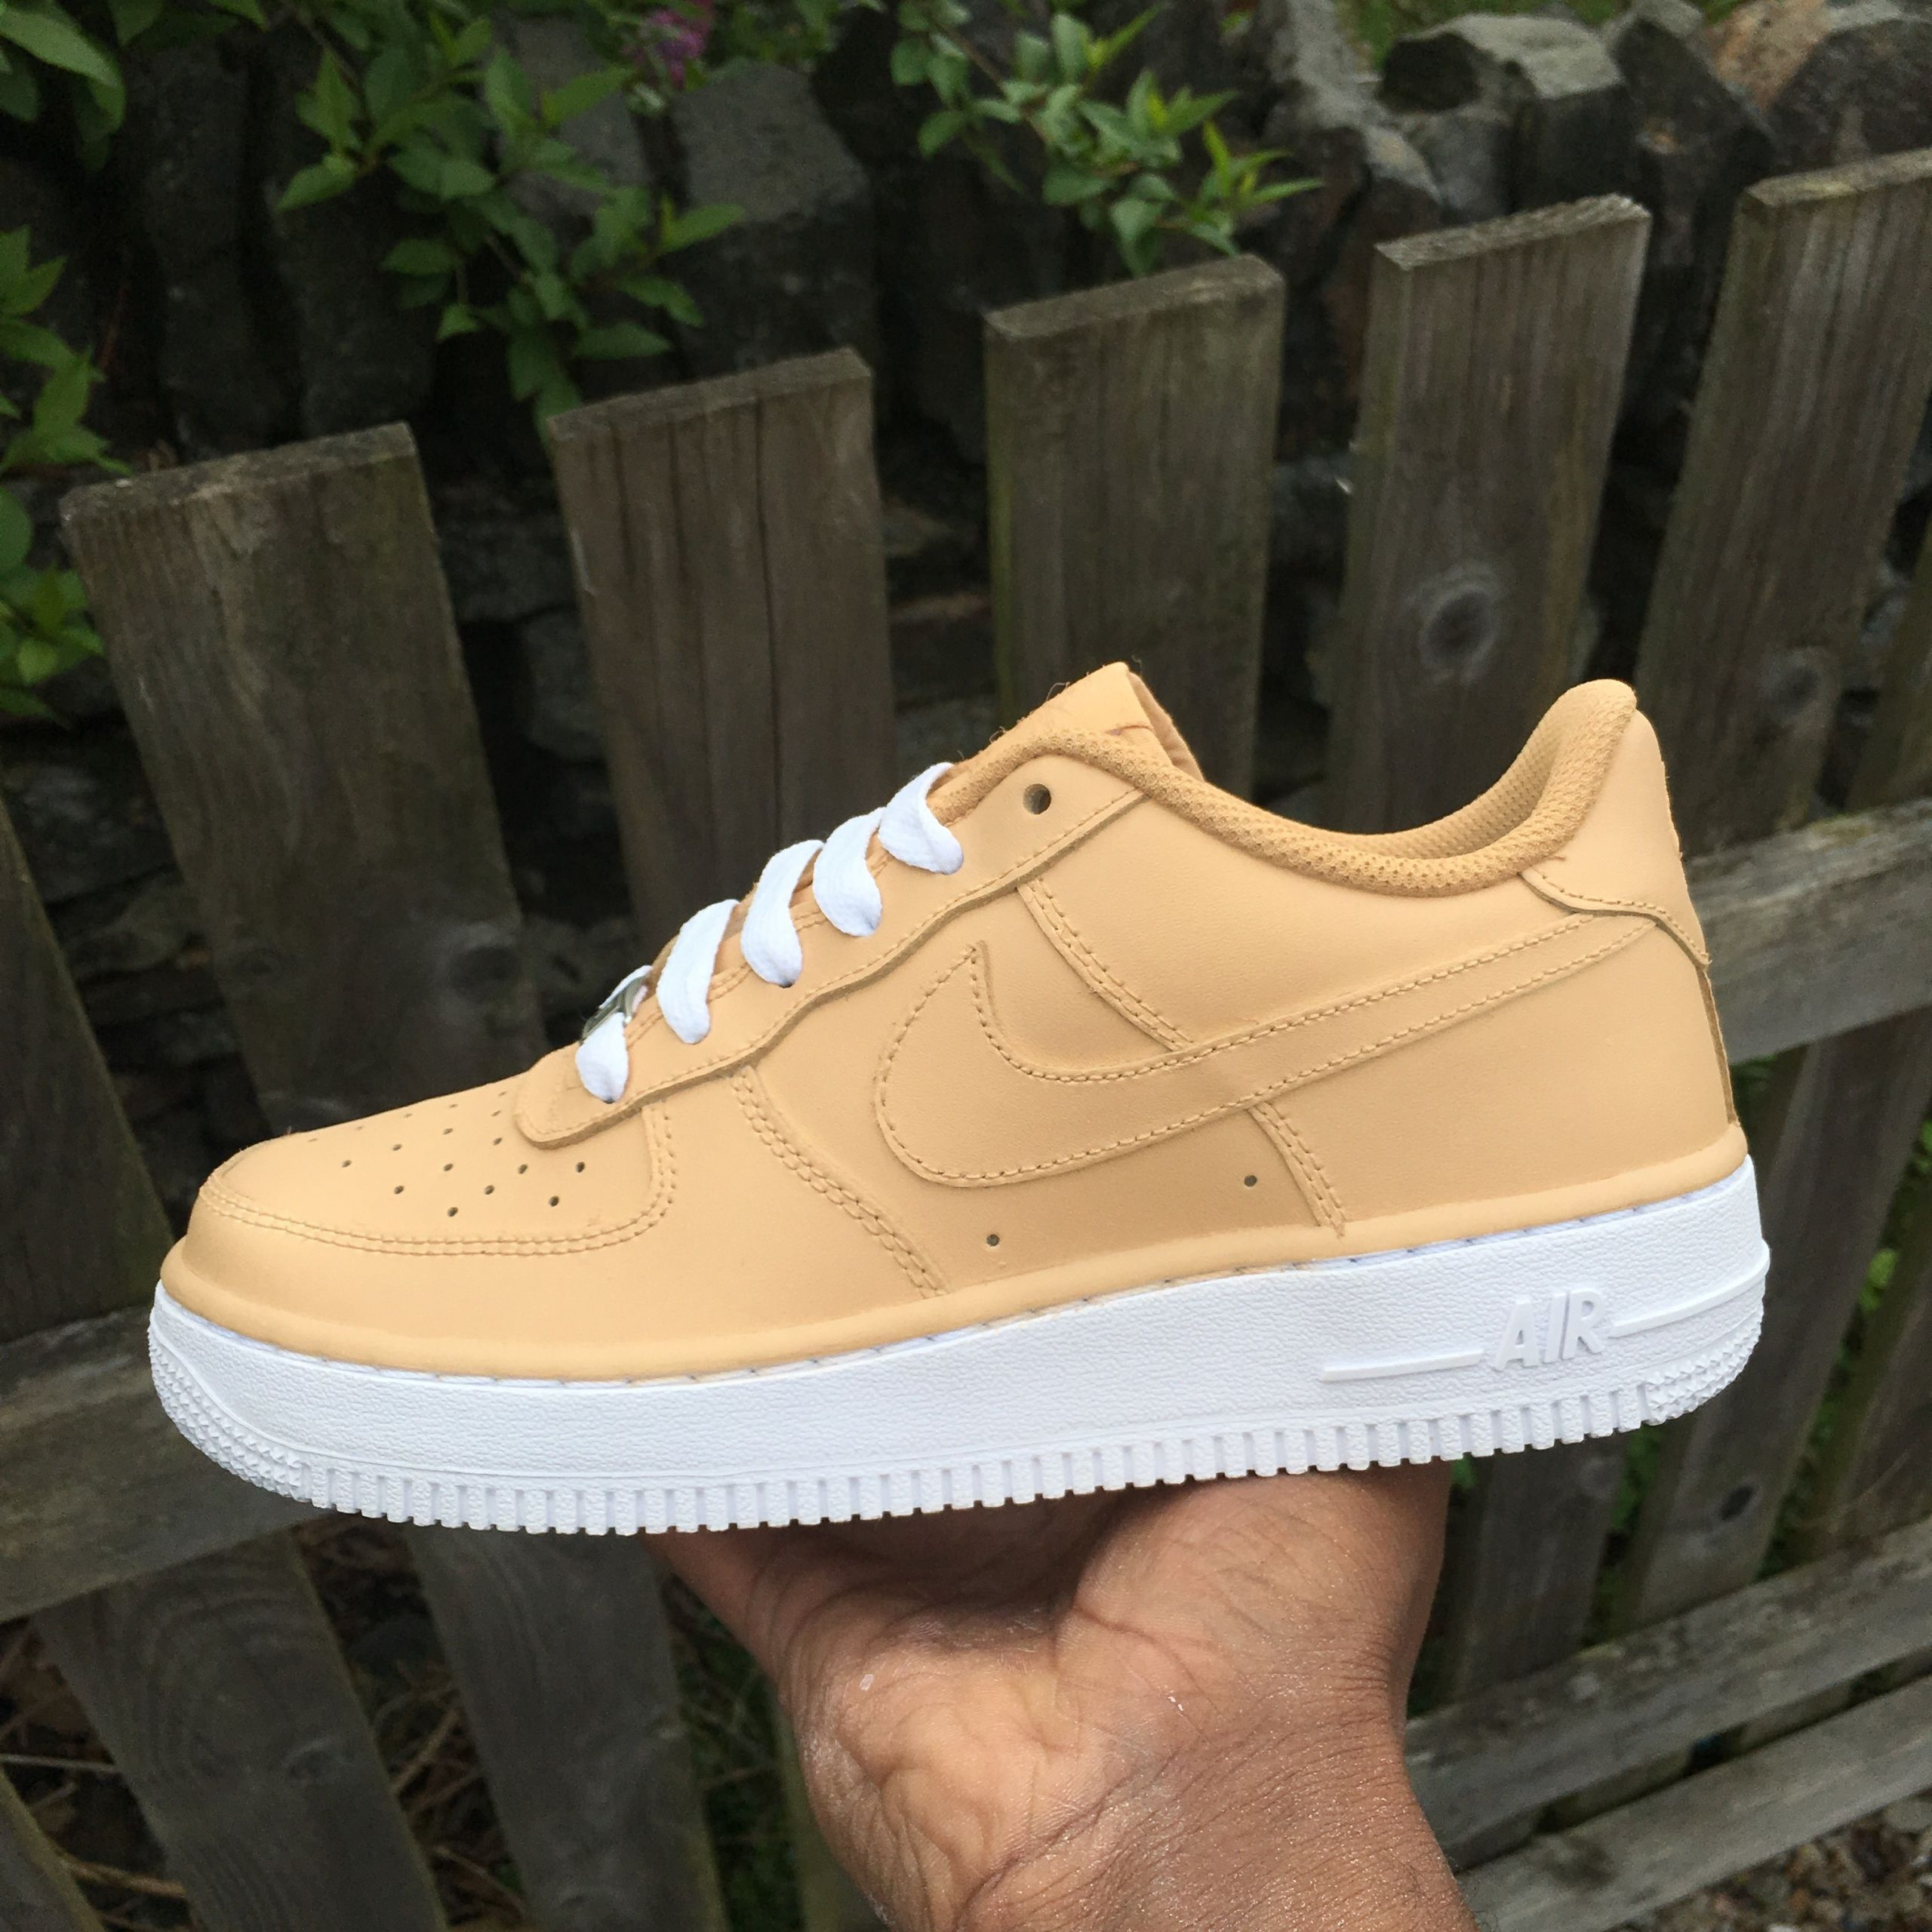 separation shoes a4671 73d05 CUSTOM   Nike Air Force 1 Low - Nude   Tan